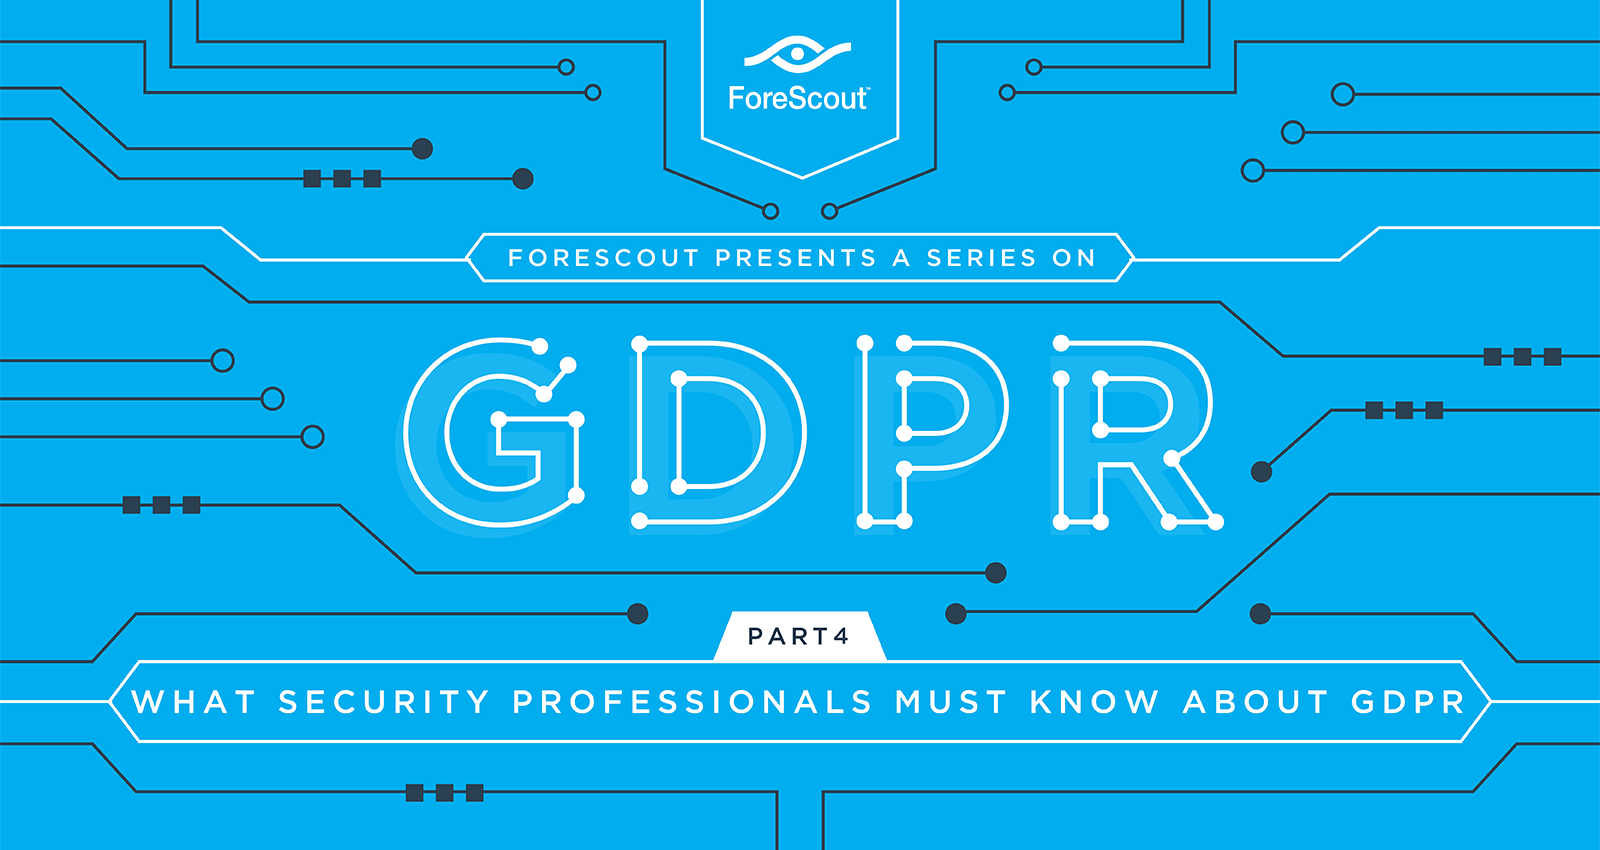 What Security Professionals MUST Know About GDPR - Forescout